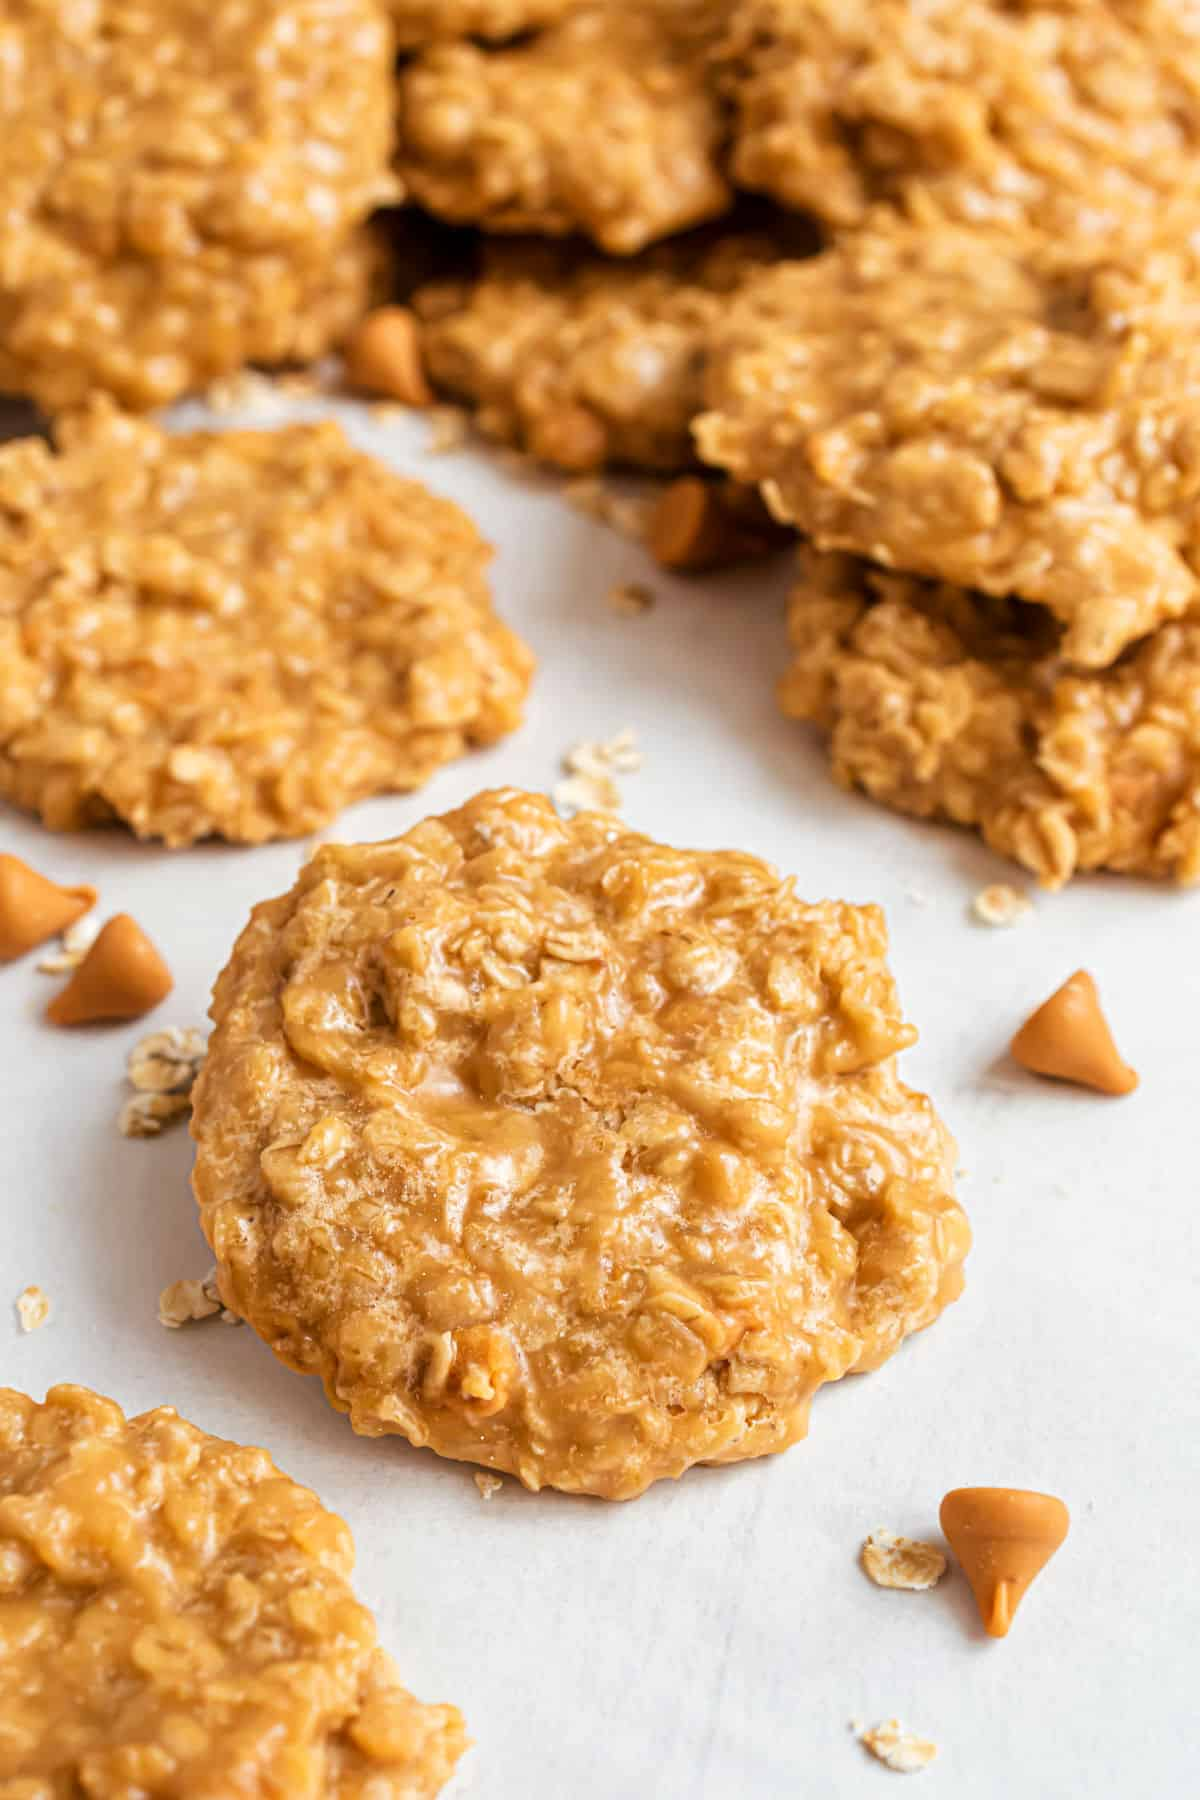 No bake oatmeal butterscotch cookies on parchment paper.